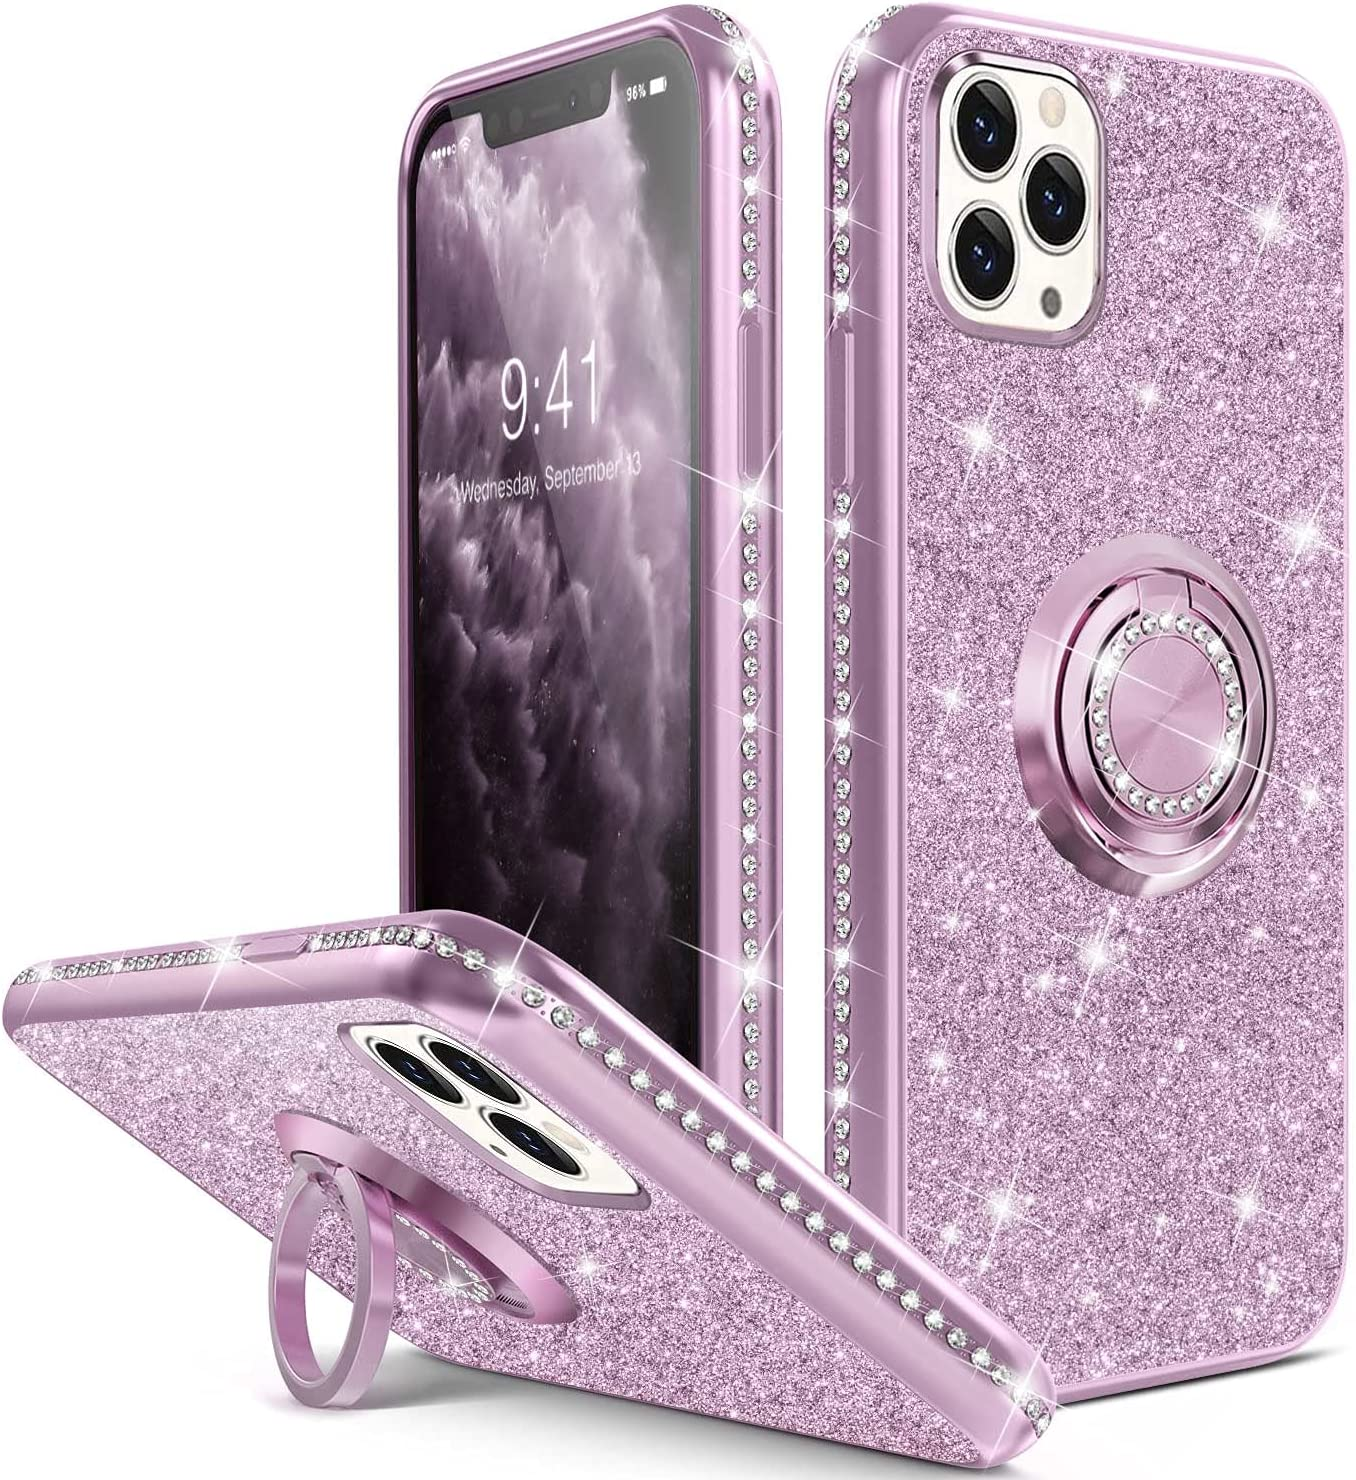 Thomo Compatible with iPhone 12 Pro Max Case,[Bling Kickstand] Cute Glitter Slim Full-Body Protective Bumper Phone Cases for iPhone 12 Pro Max Women Girls-Purple